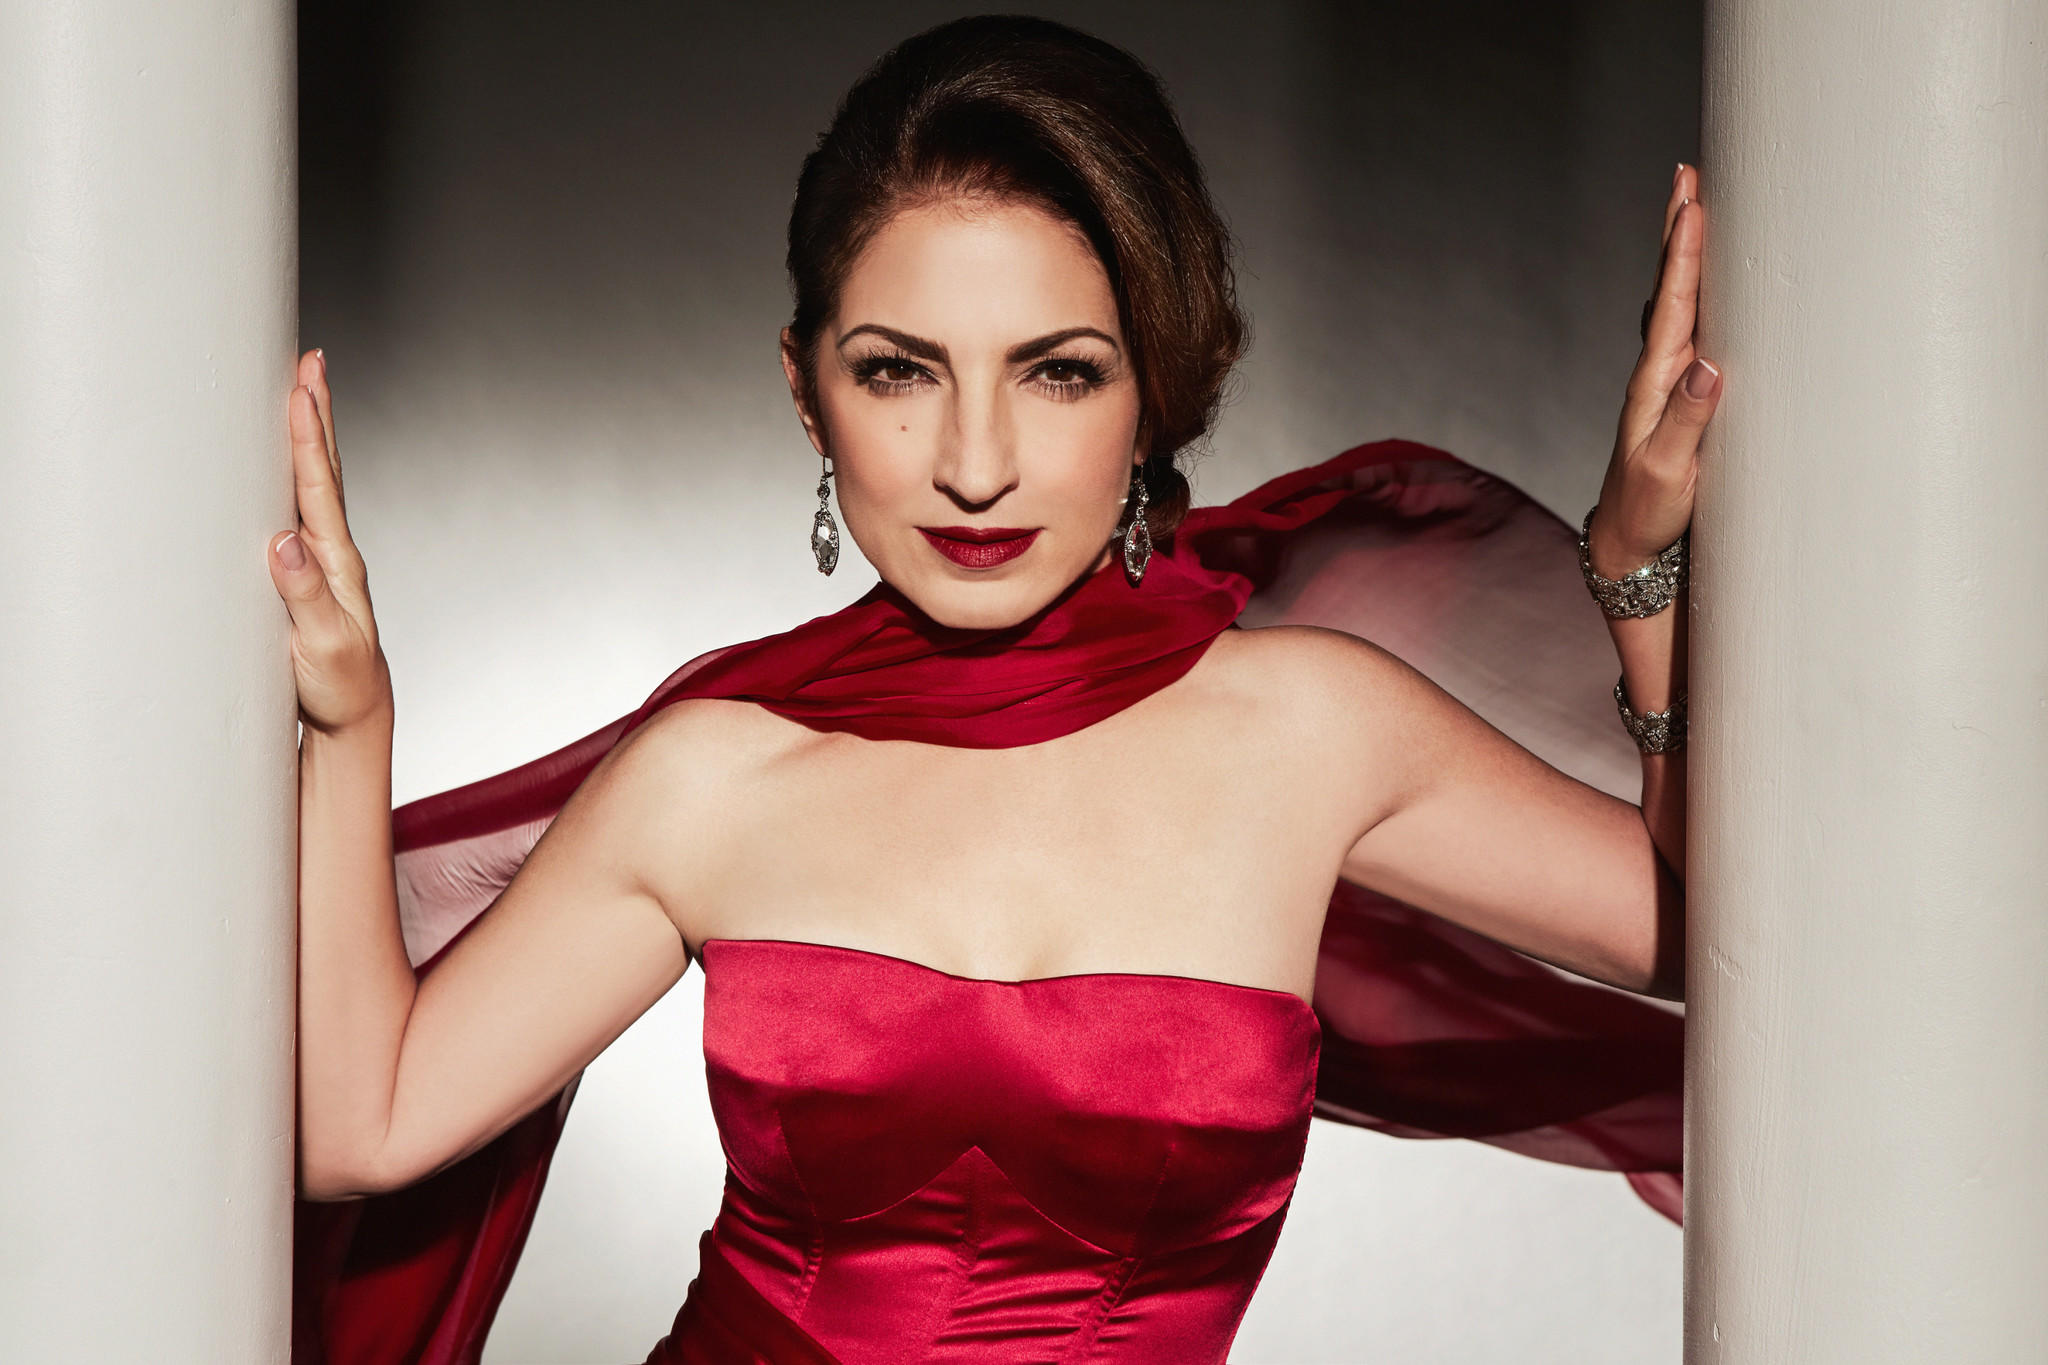 Singer and actress Gloria Estefan will be recognized as a Kennedy Center honoree in December. (Jesus Cordero / Kennedy Center Honors)